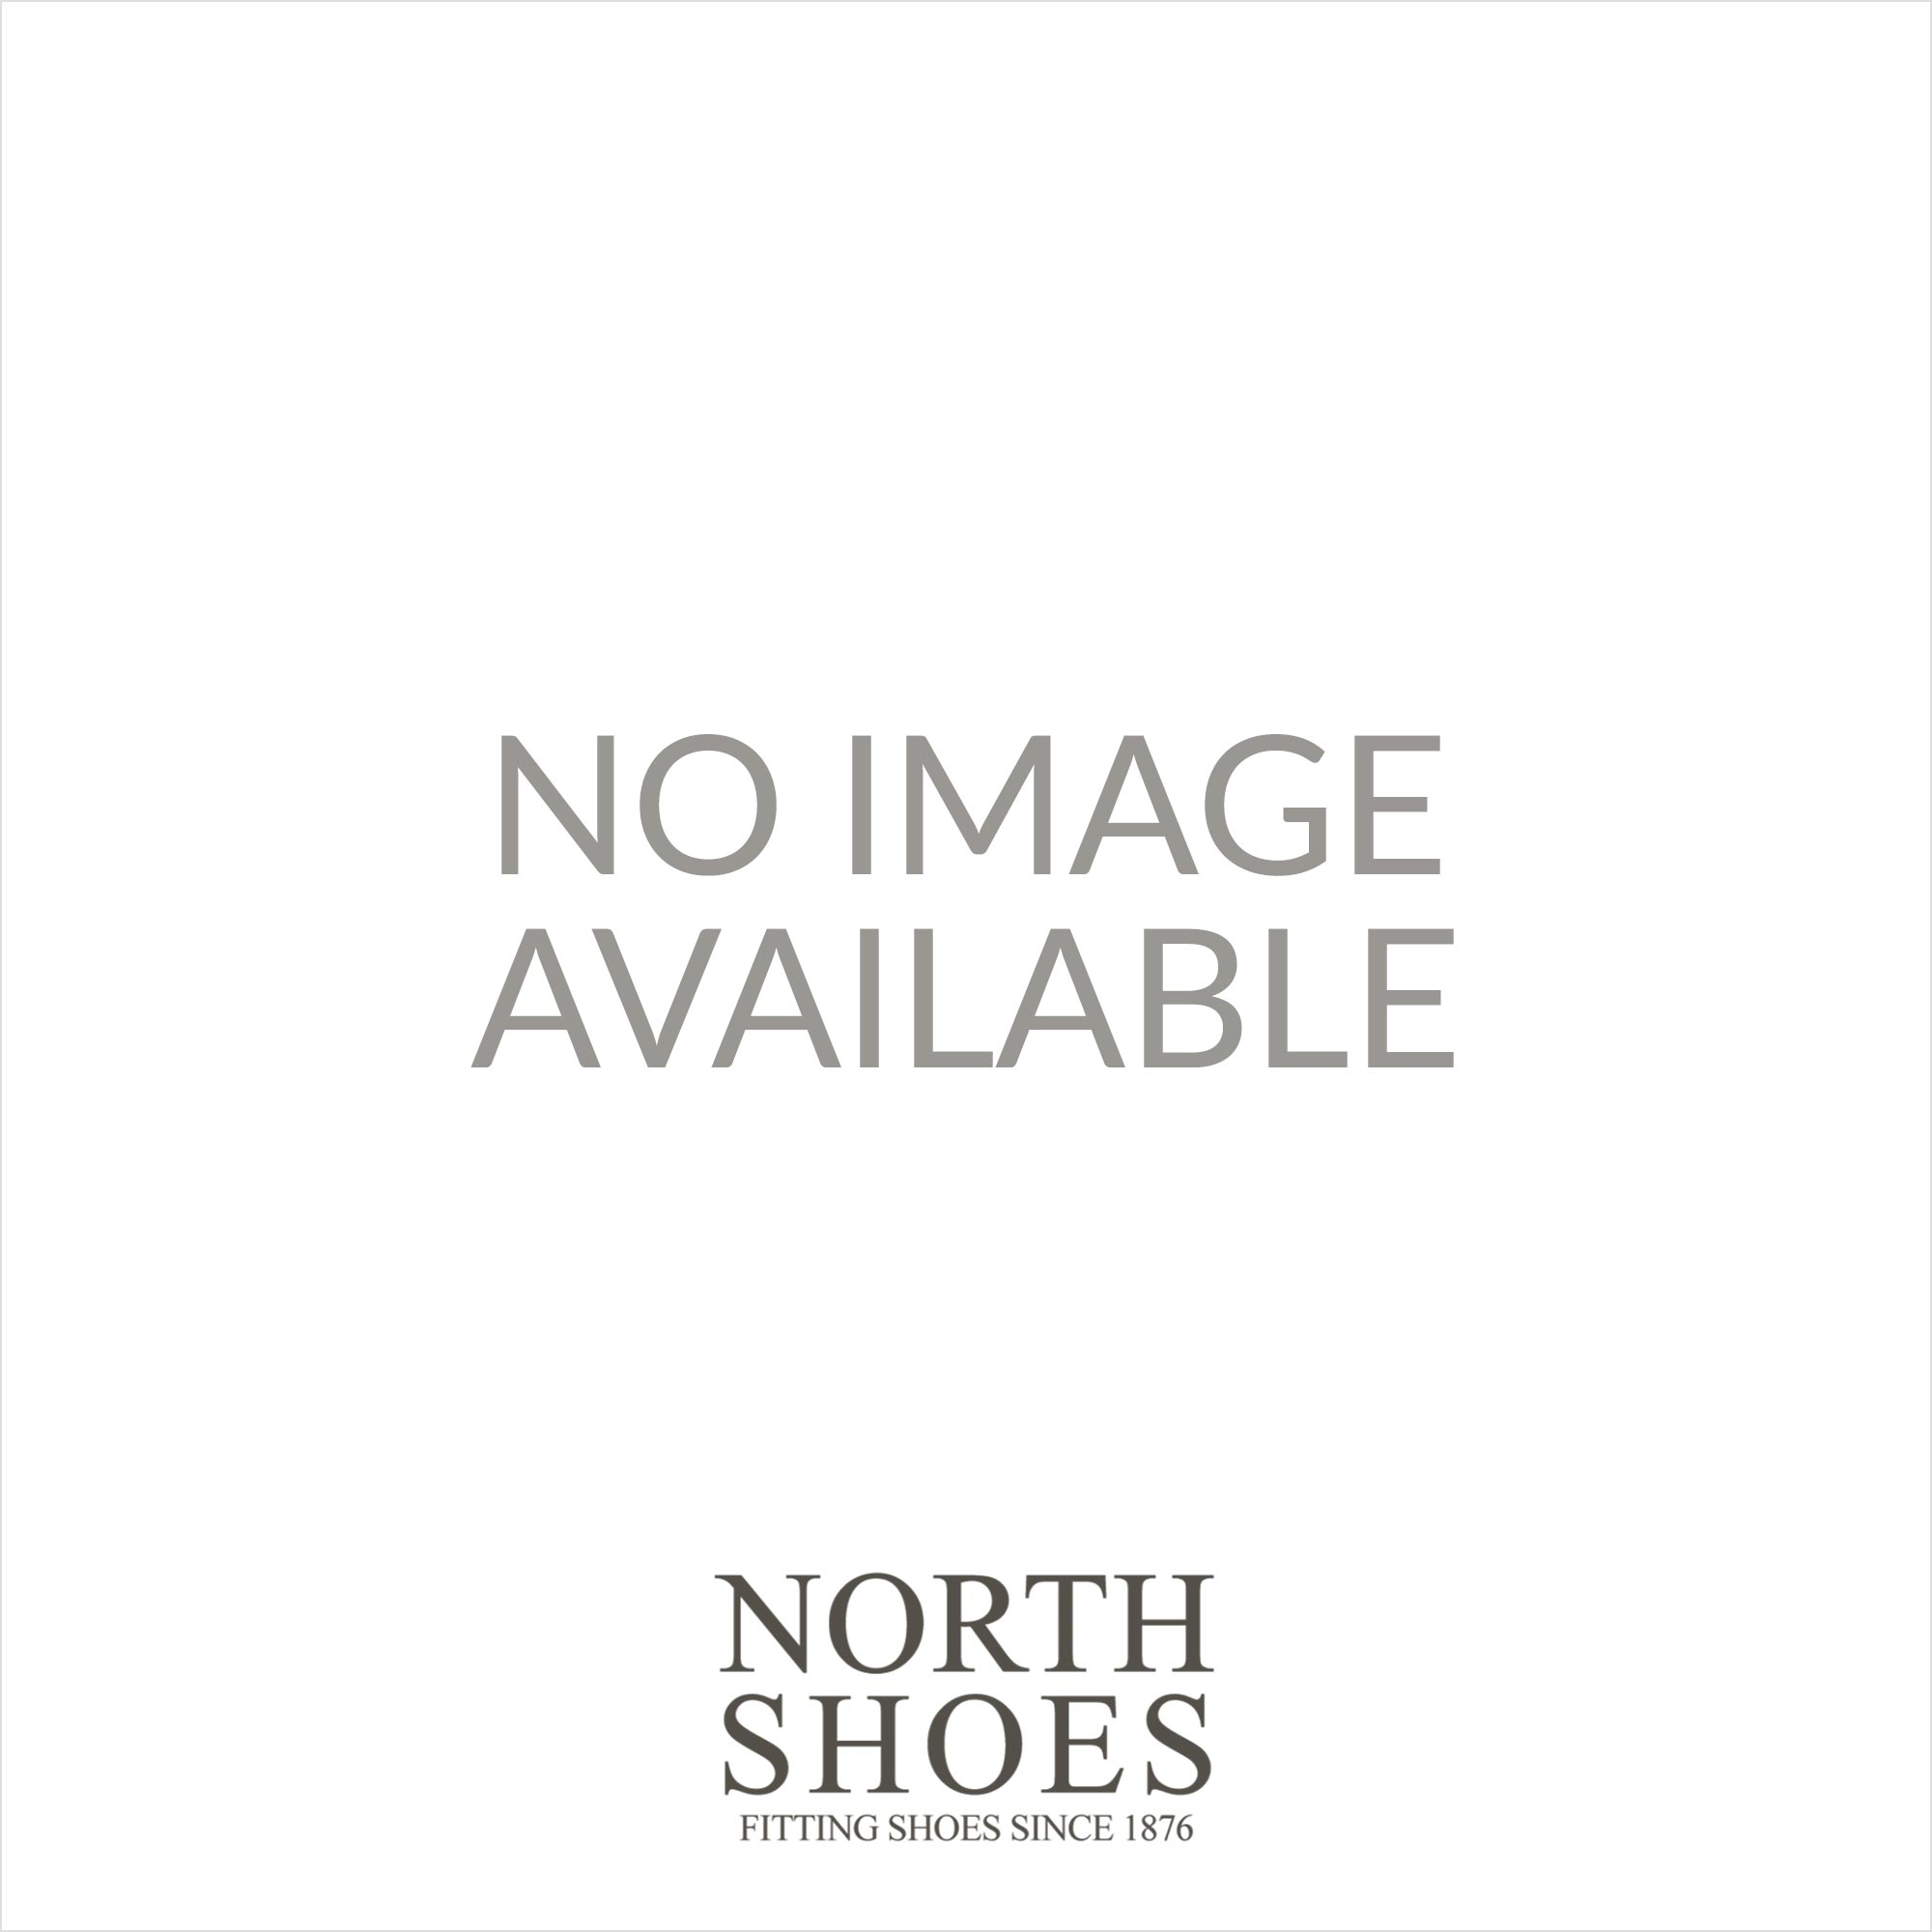 1051a6b5e9be Converse Chuck Taylor All Star Ox 66045C Rose Gold Glitter Girls Lace Up  Shoe - Converse from North Shoes UK